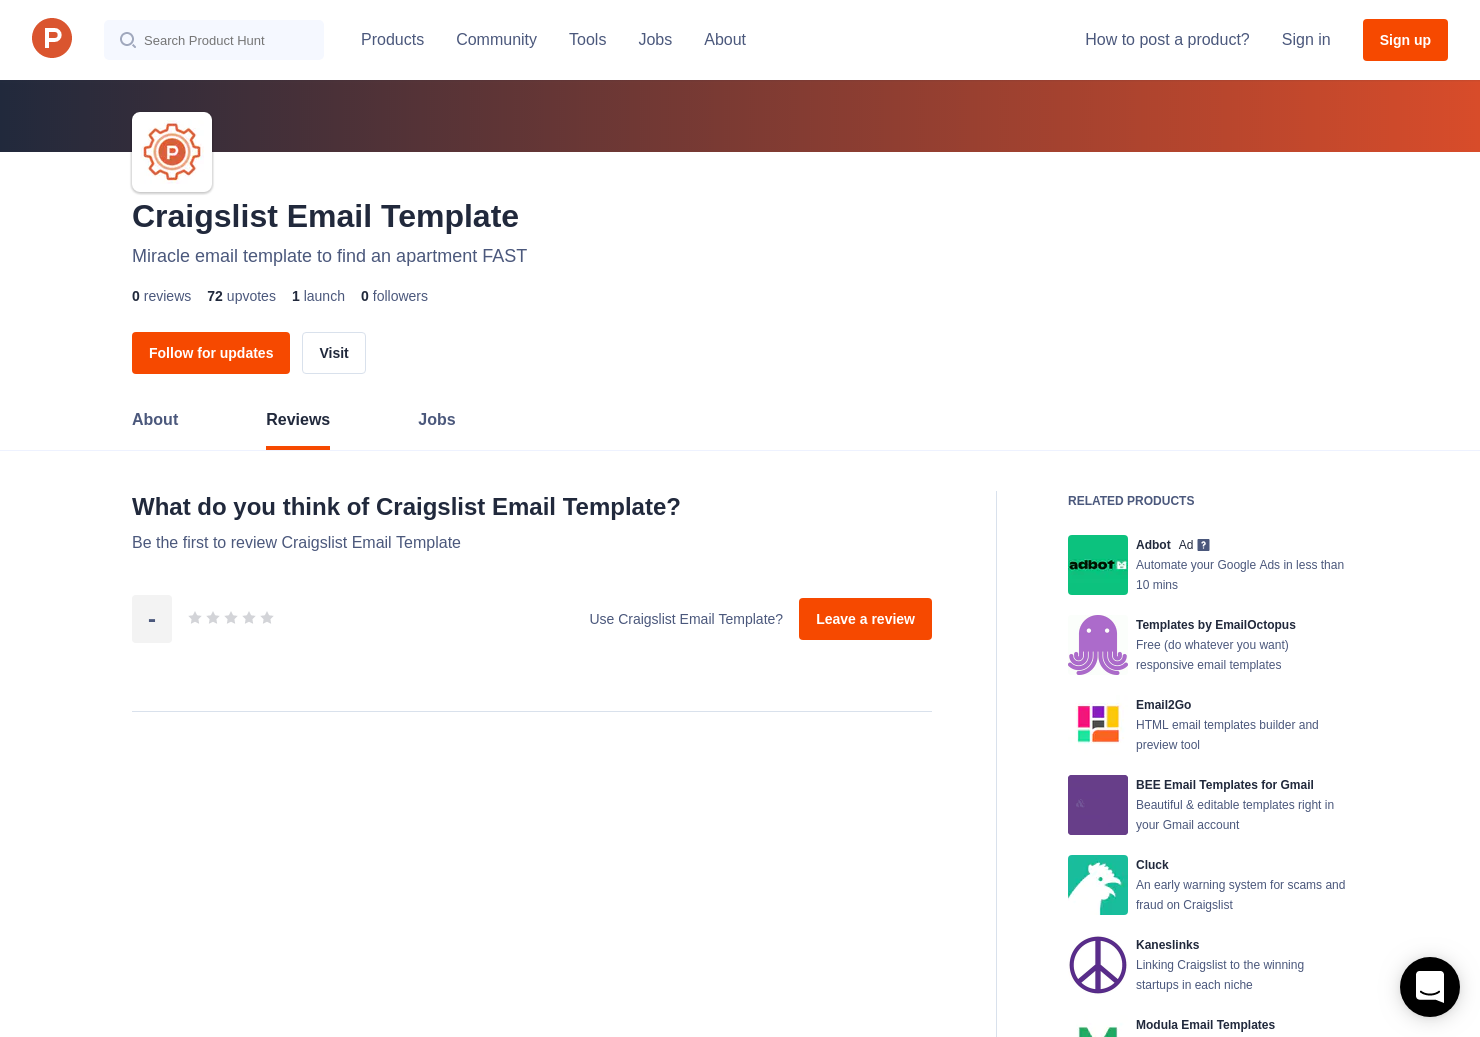 Craigslist Email Template Reviews - Pros, Cons and Rating